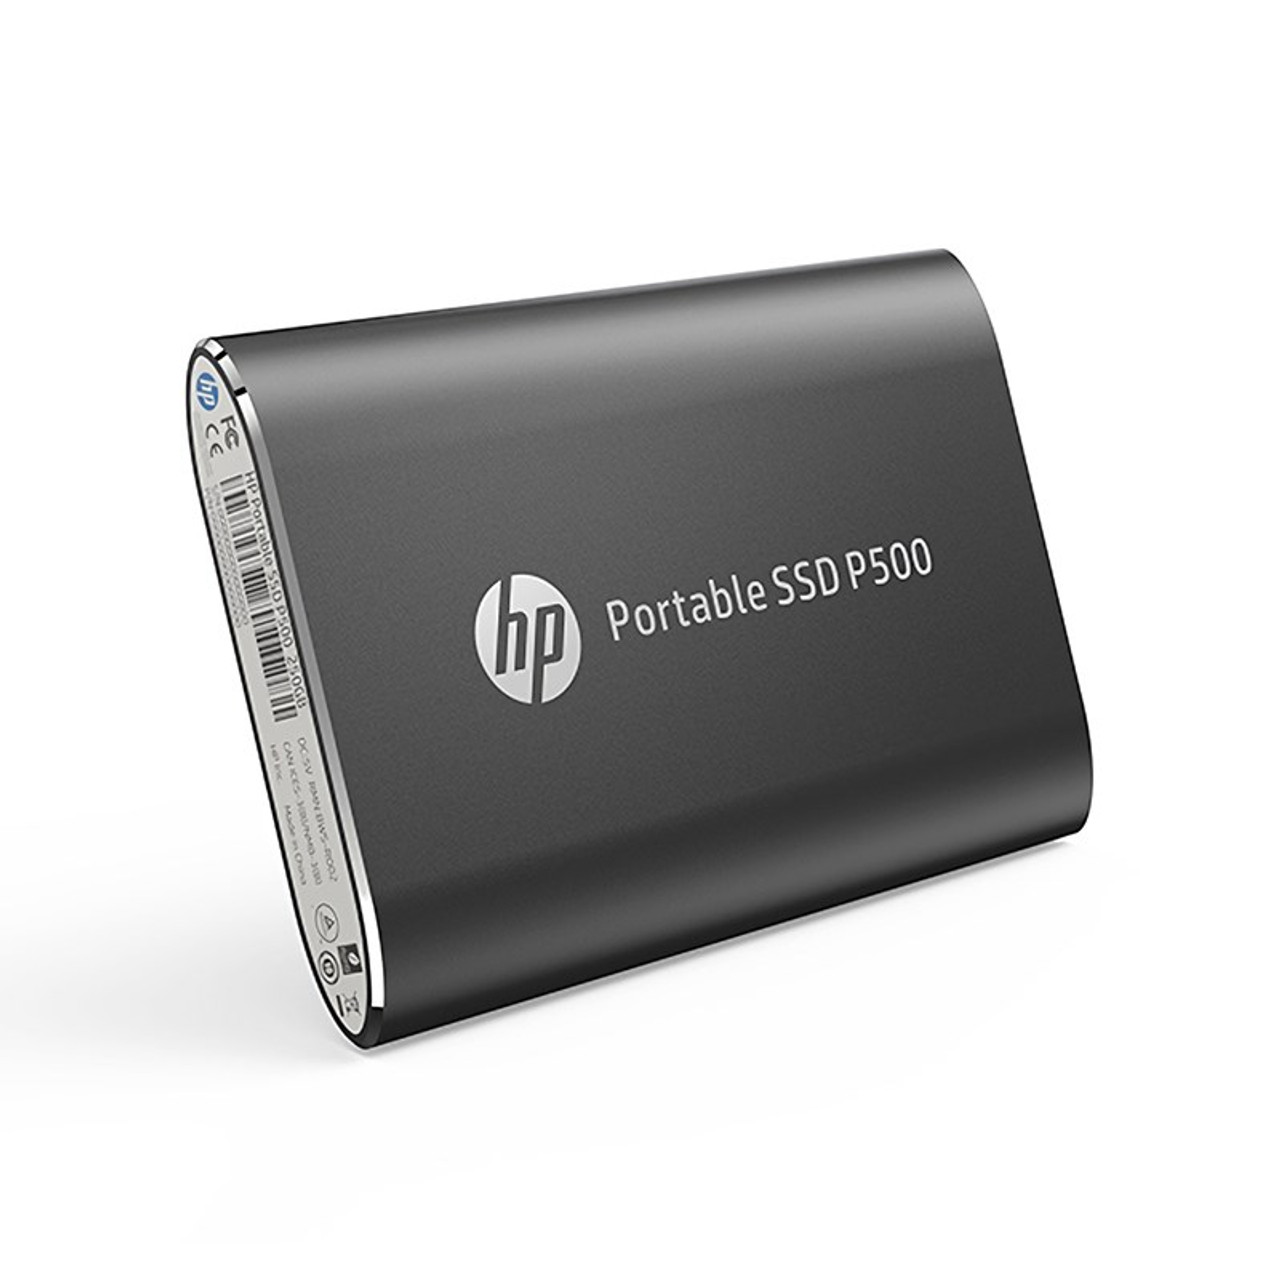 Image for HP P500 250GB USB 3.2 Gen 2 Portable SSD - Black CX Computer Superstore